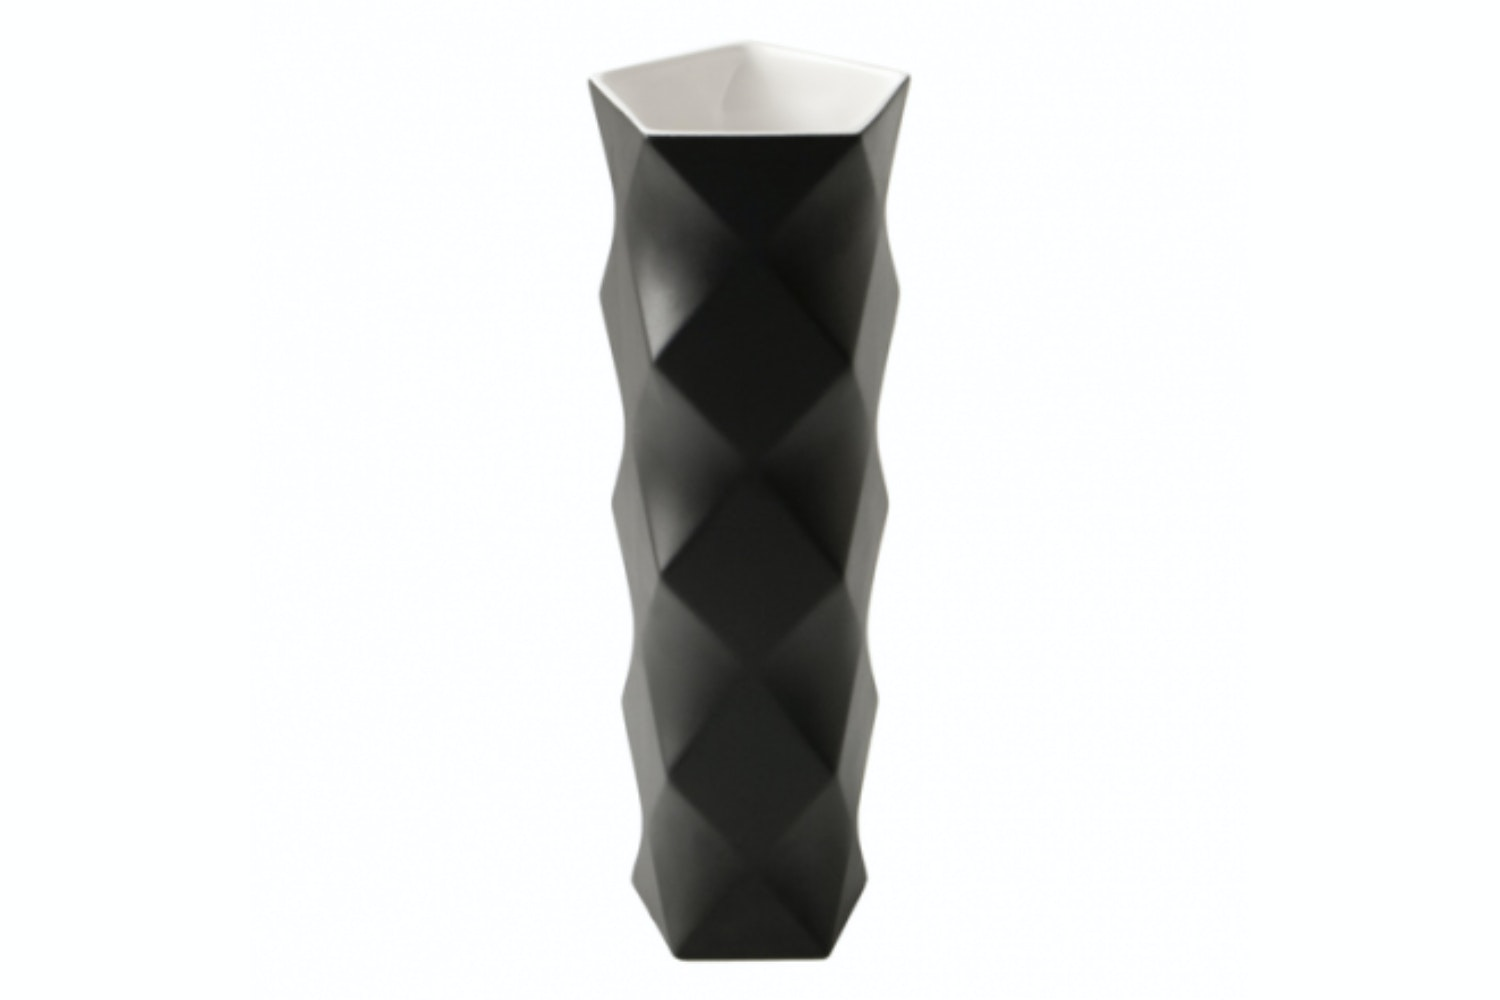 Joker High Vase by Nicole Aebischer for B&B Italia